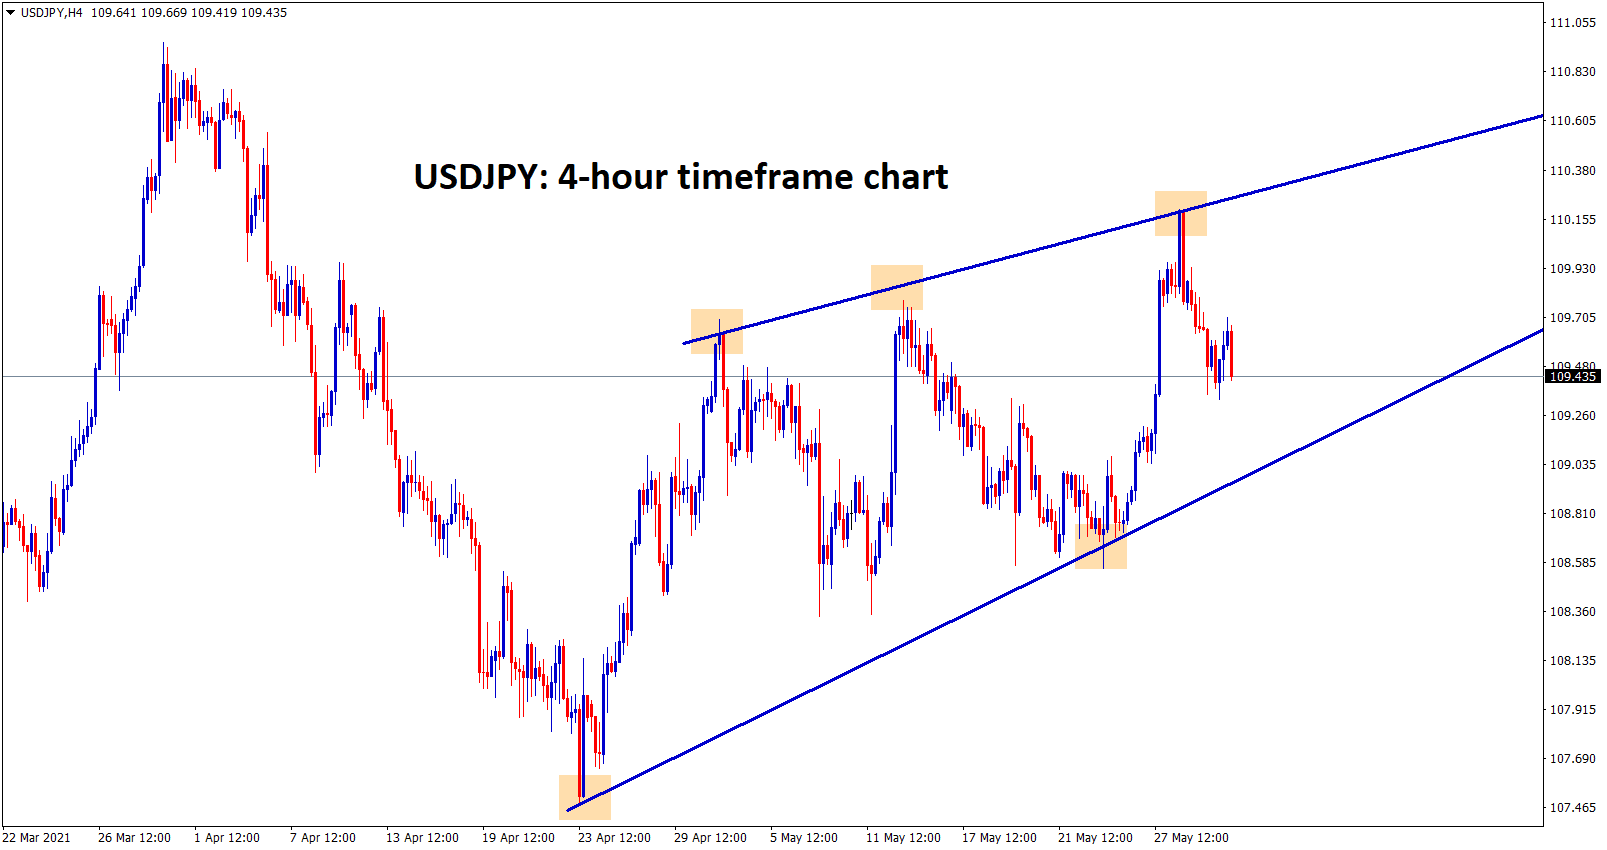 USDJPY moving in an Rising wedge pattern in h4 chart